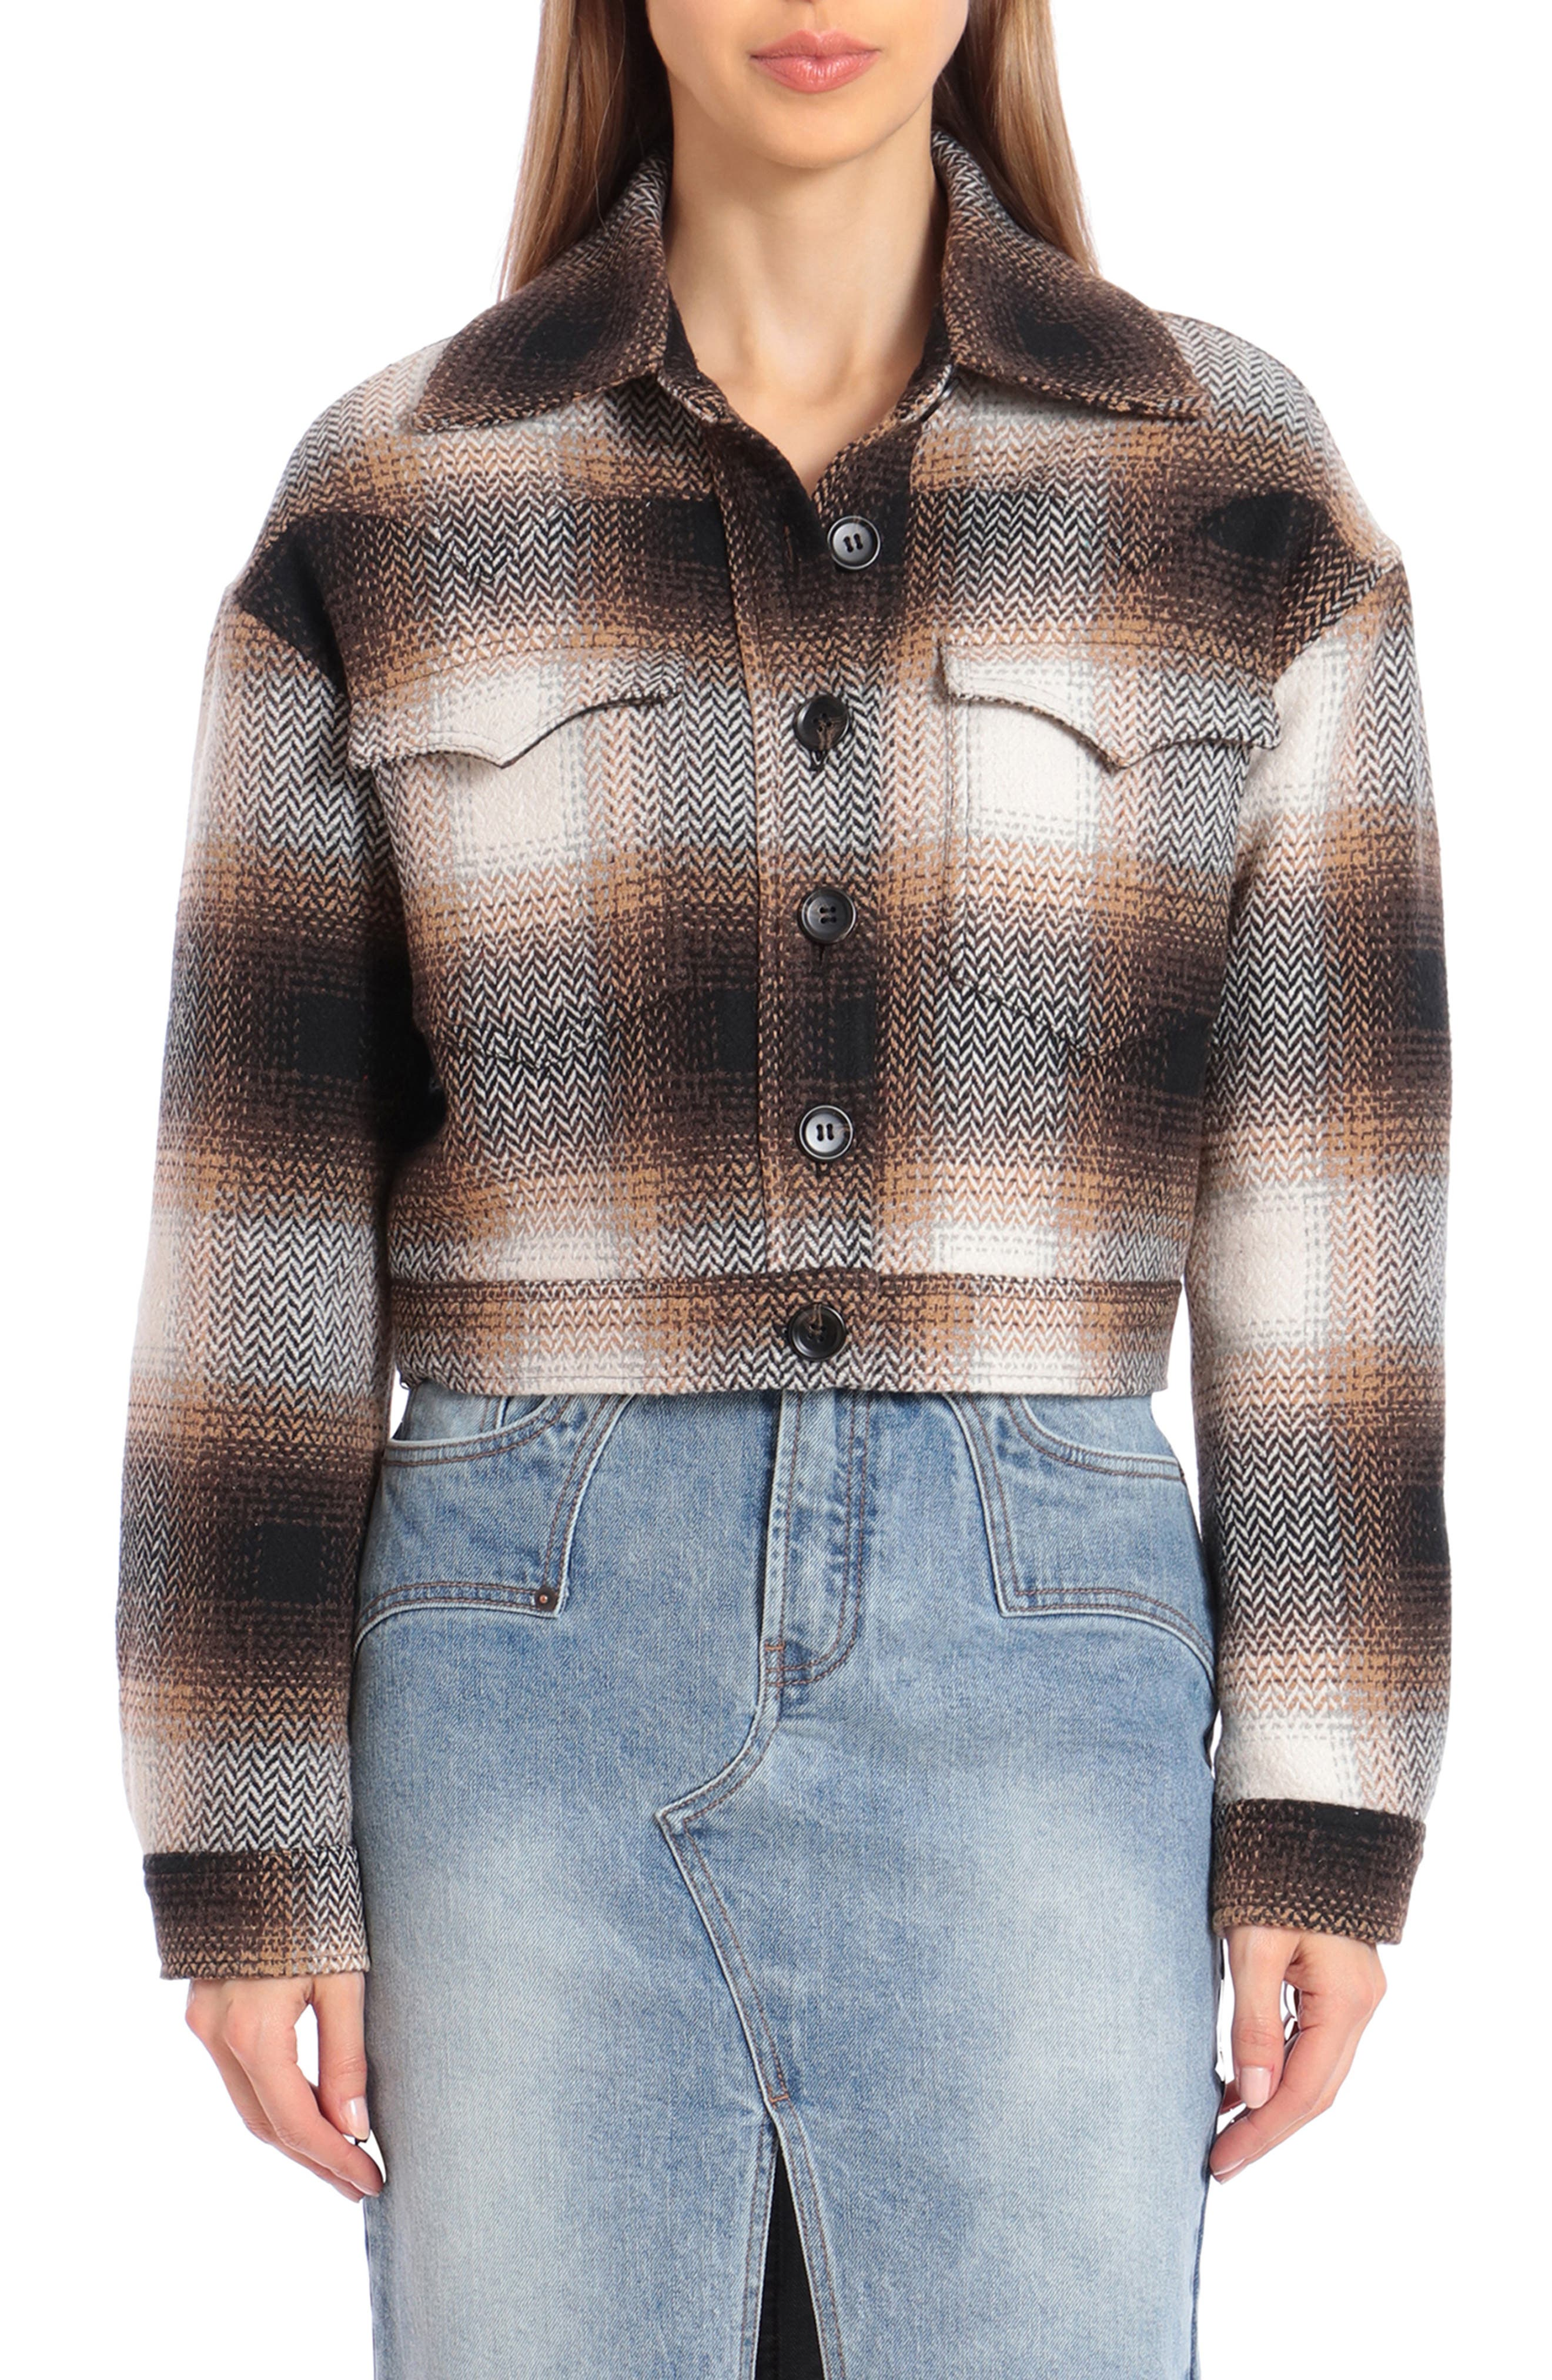 1930s Style Clothing and Fashion Womens Avec Les Filles Plaid Crop Jacket $159.00 AT vintagedancer.com